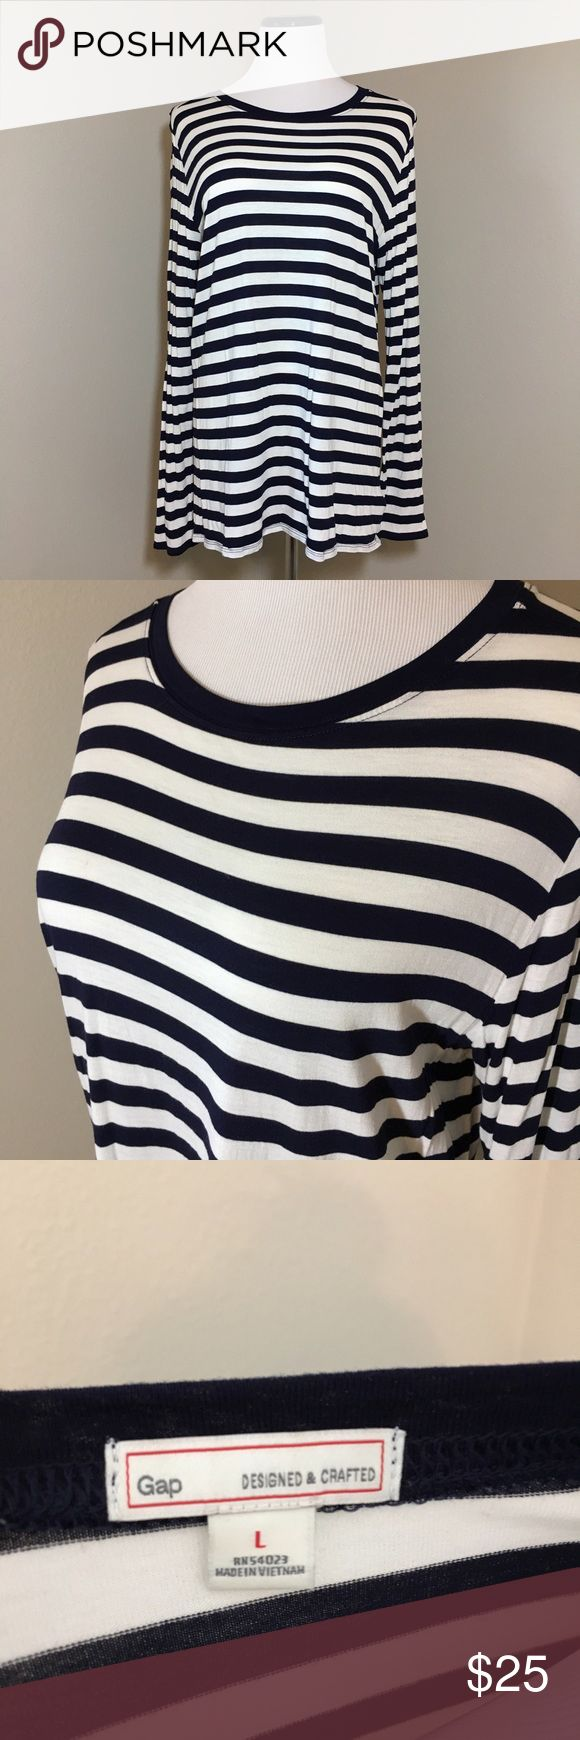 Striped Long Sleeve Shirt Navy and white striped Long Sleeve t-shirt. Worn once and in excellent used condition. Measurements only by request. GAP Tops Tees - Long Sleeve